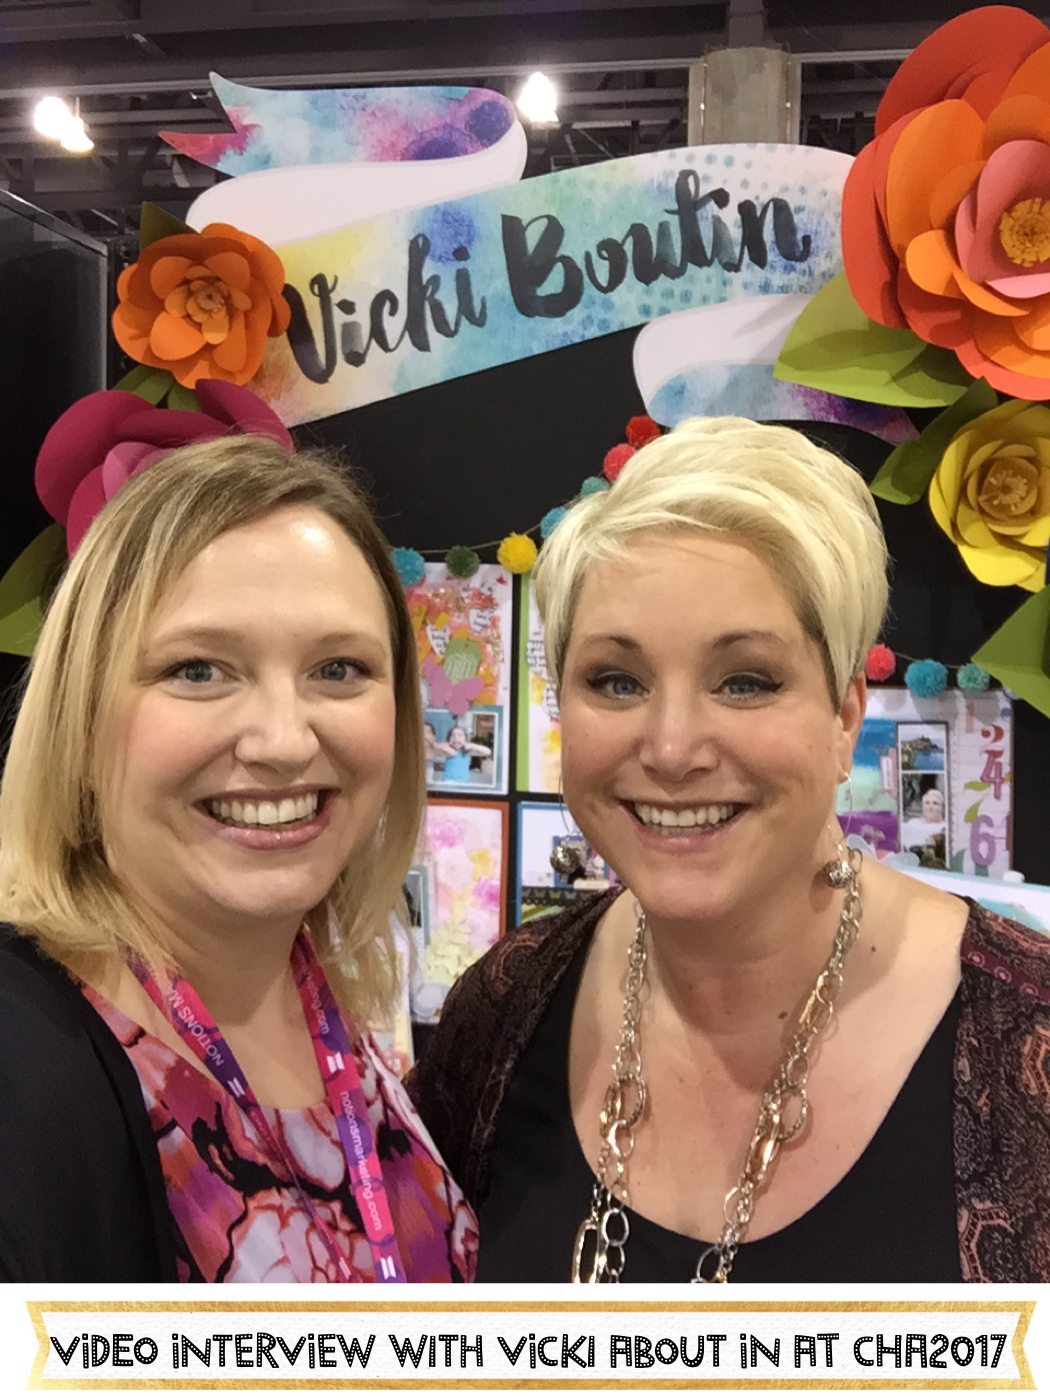 Video interview with Vicki Boutin at CHA2017 Creativation. #mixedmedia #scrapbooking #CHA2017 #creativation #vickiboutin